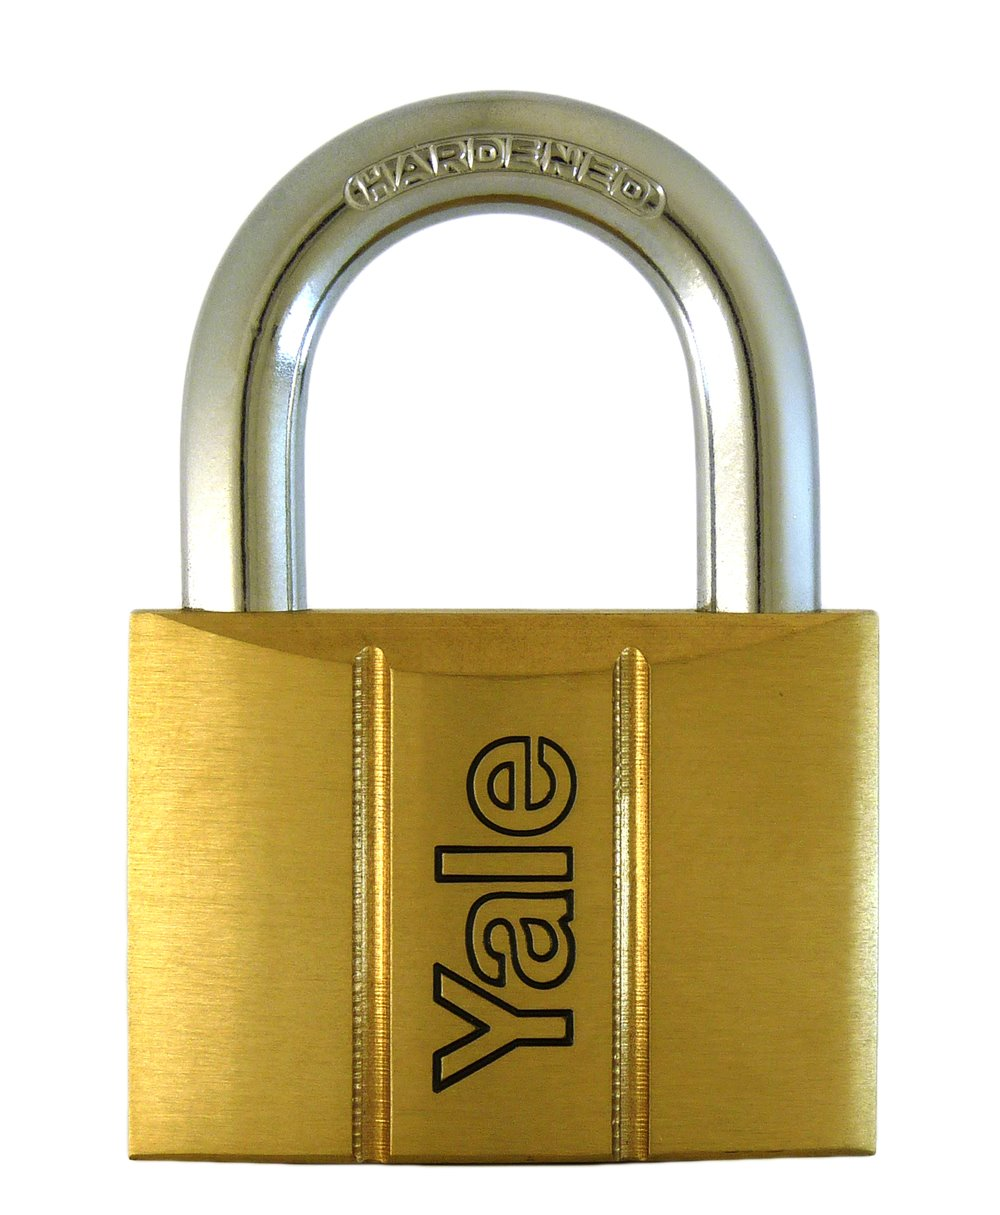 Y140/40 - Yale 140 Series Brass Padlock 40mm